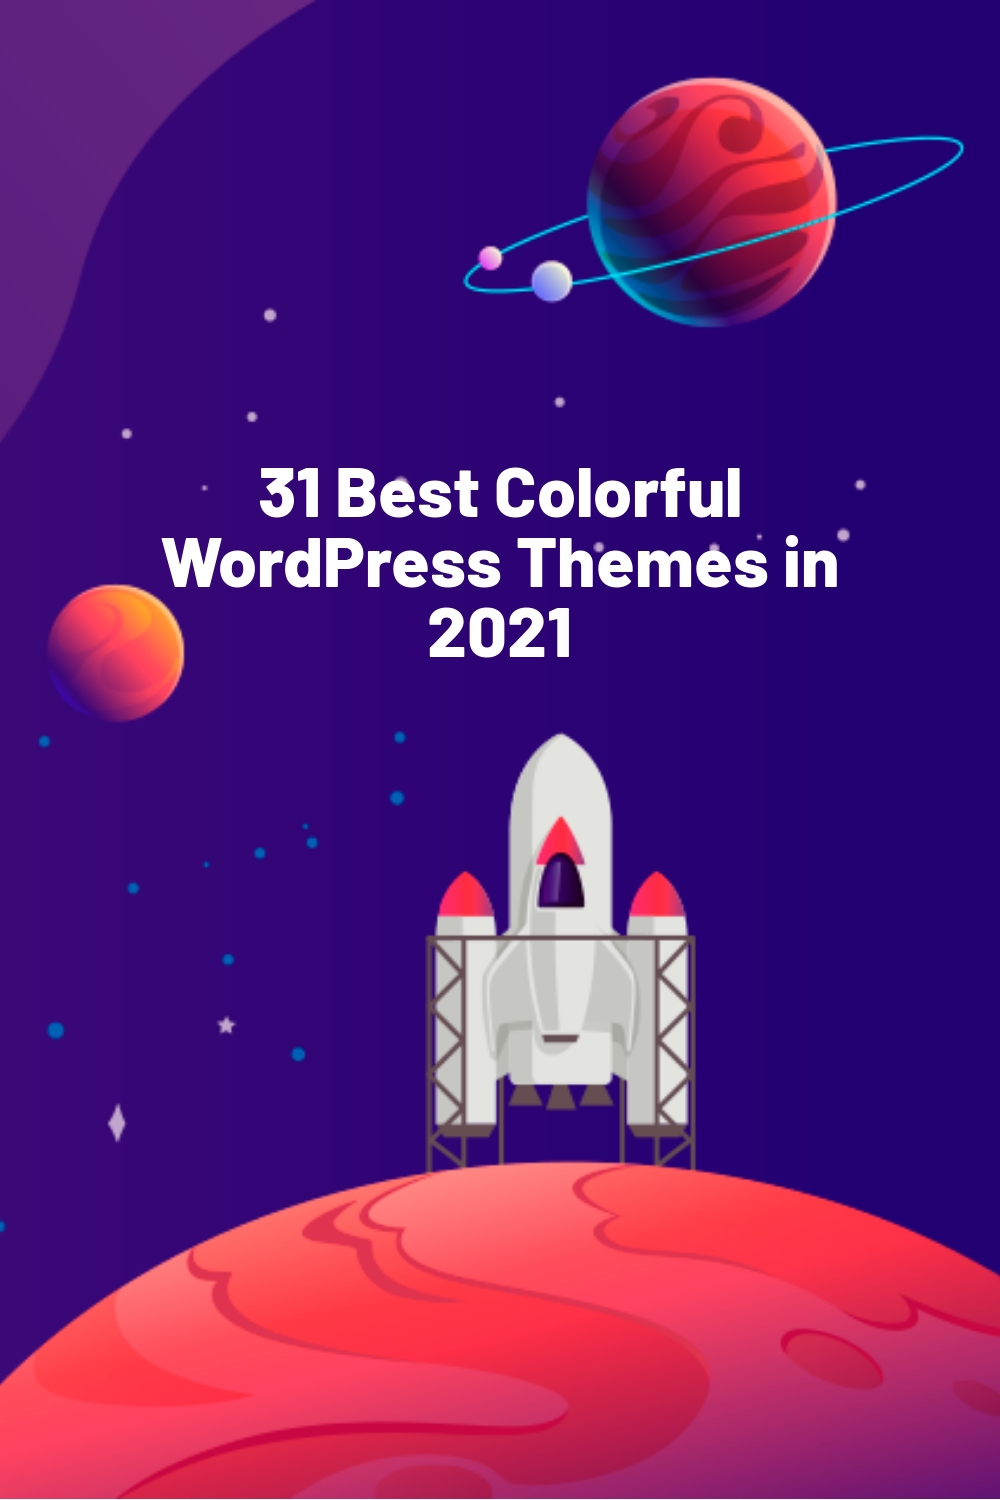 31 Best Colorful WordPress Themes in 2021